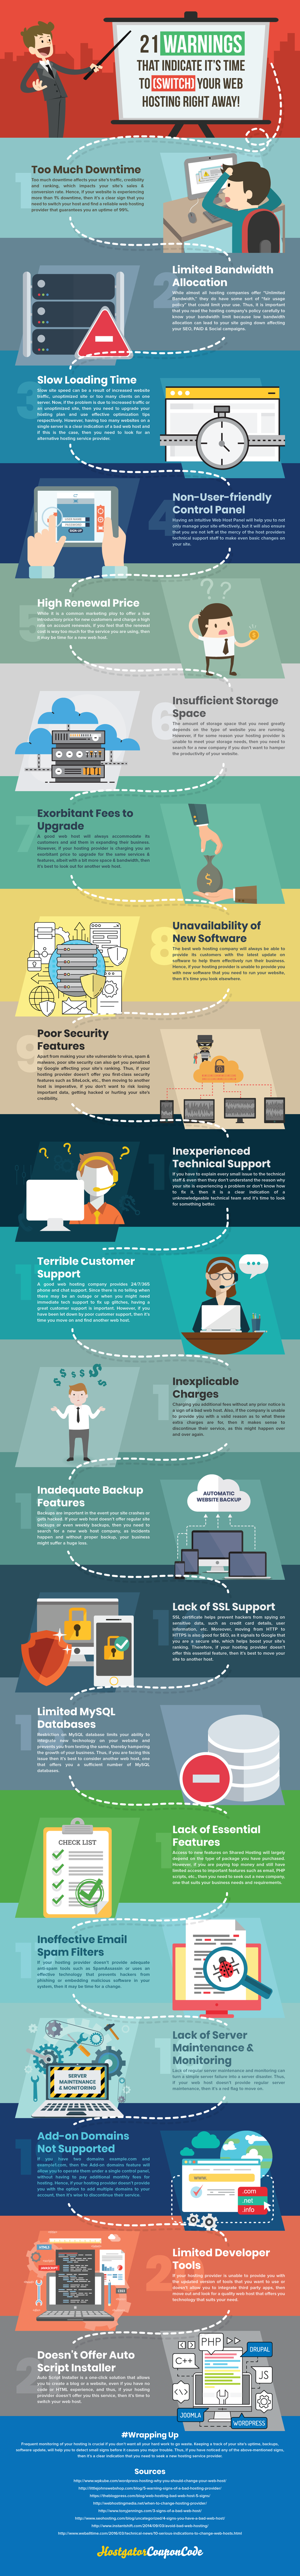 Time to Switch Your Web Hosting Right Away InfoGraphic